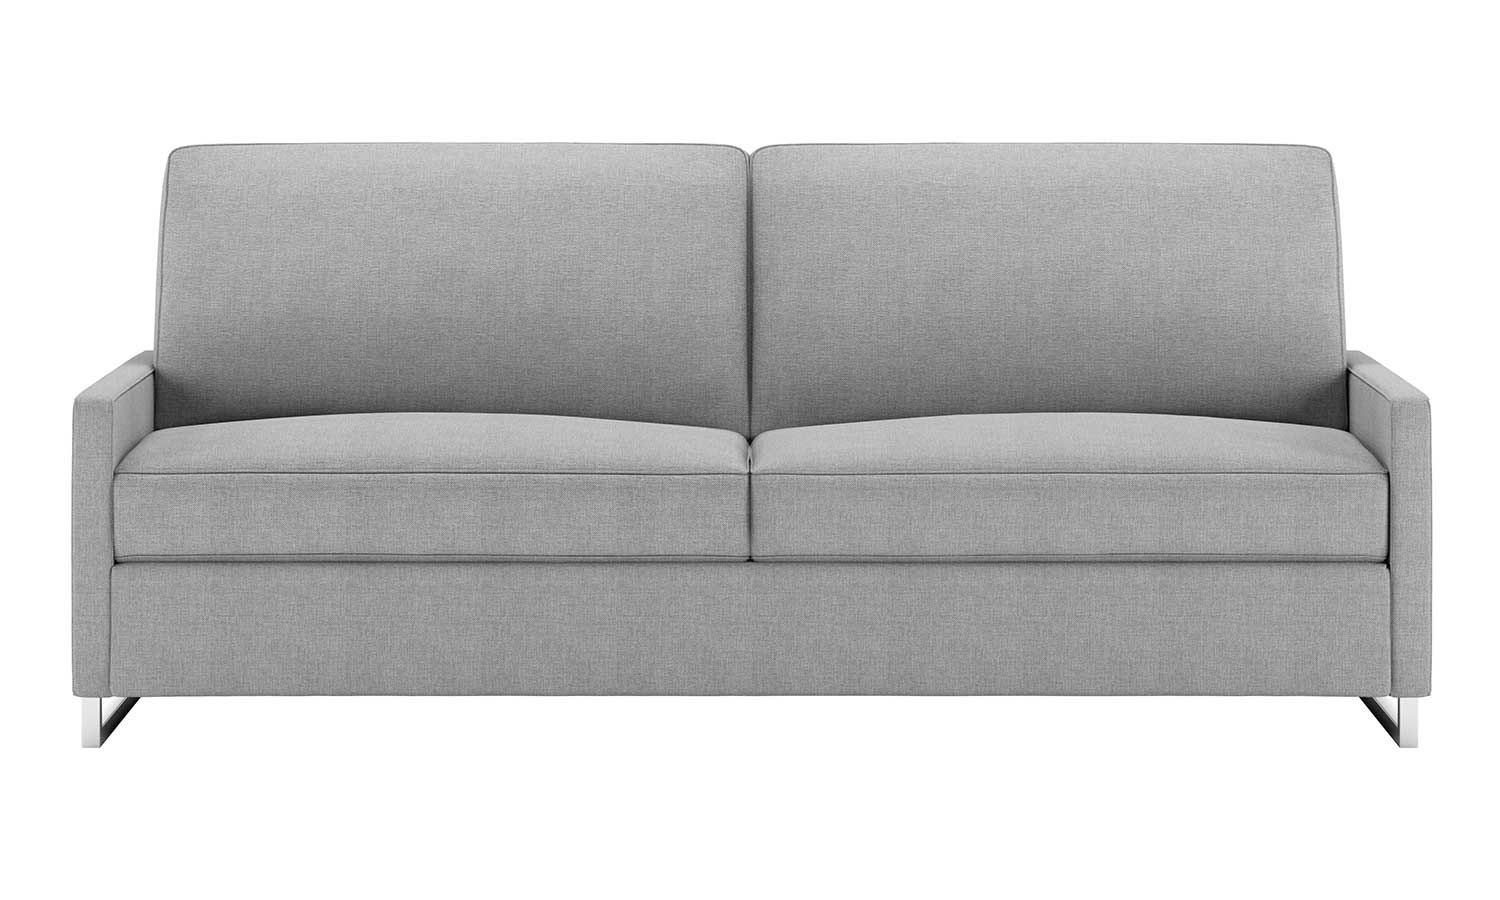 Verde Home Styles For The Sofa Bed